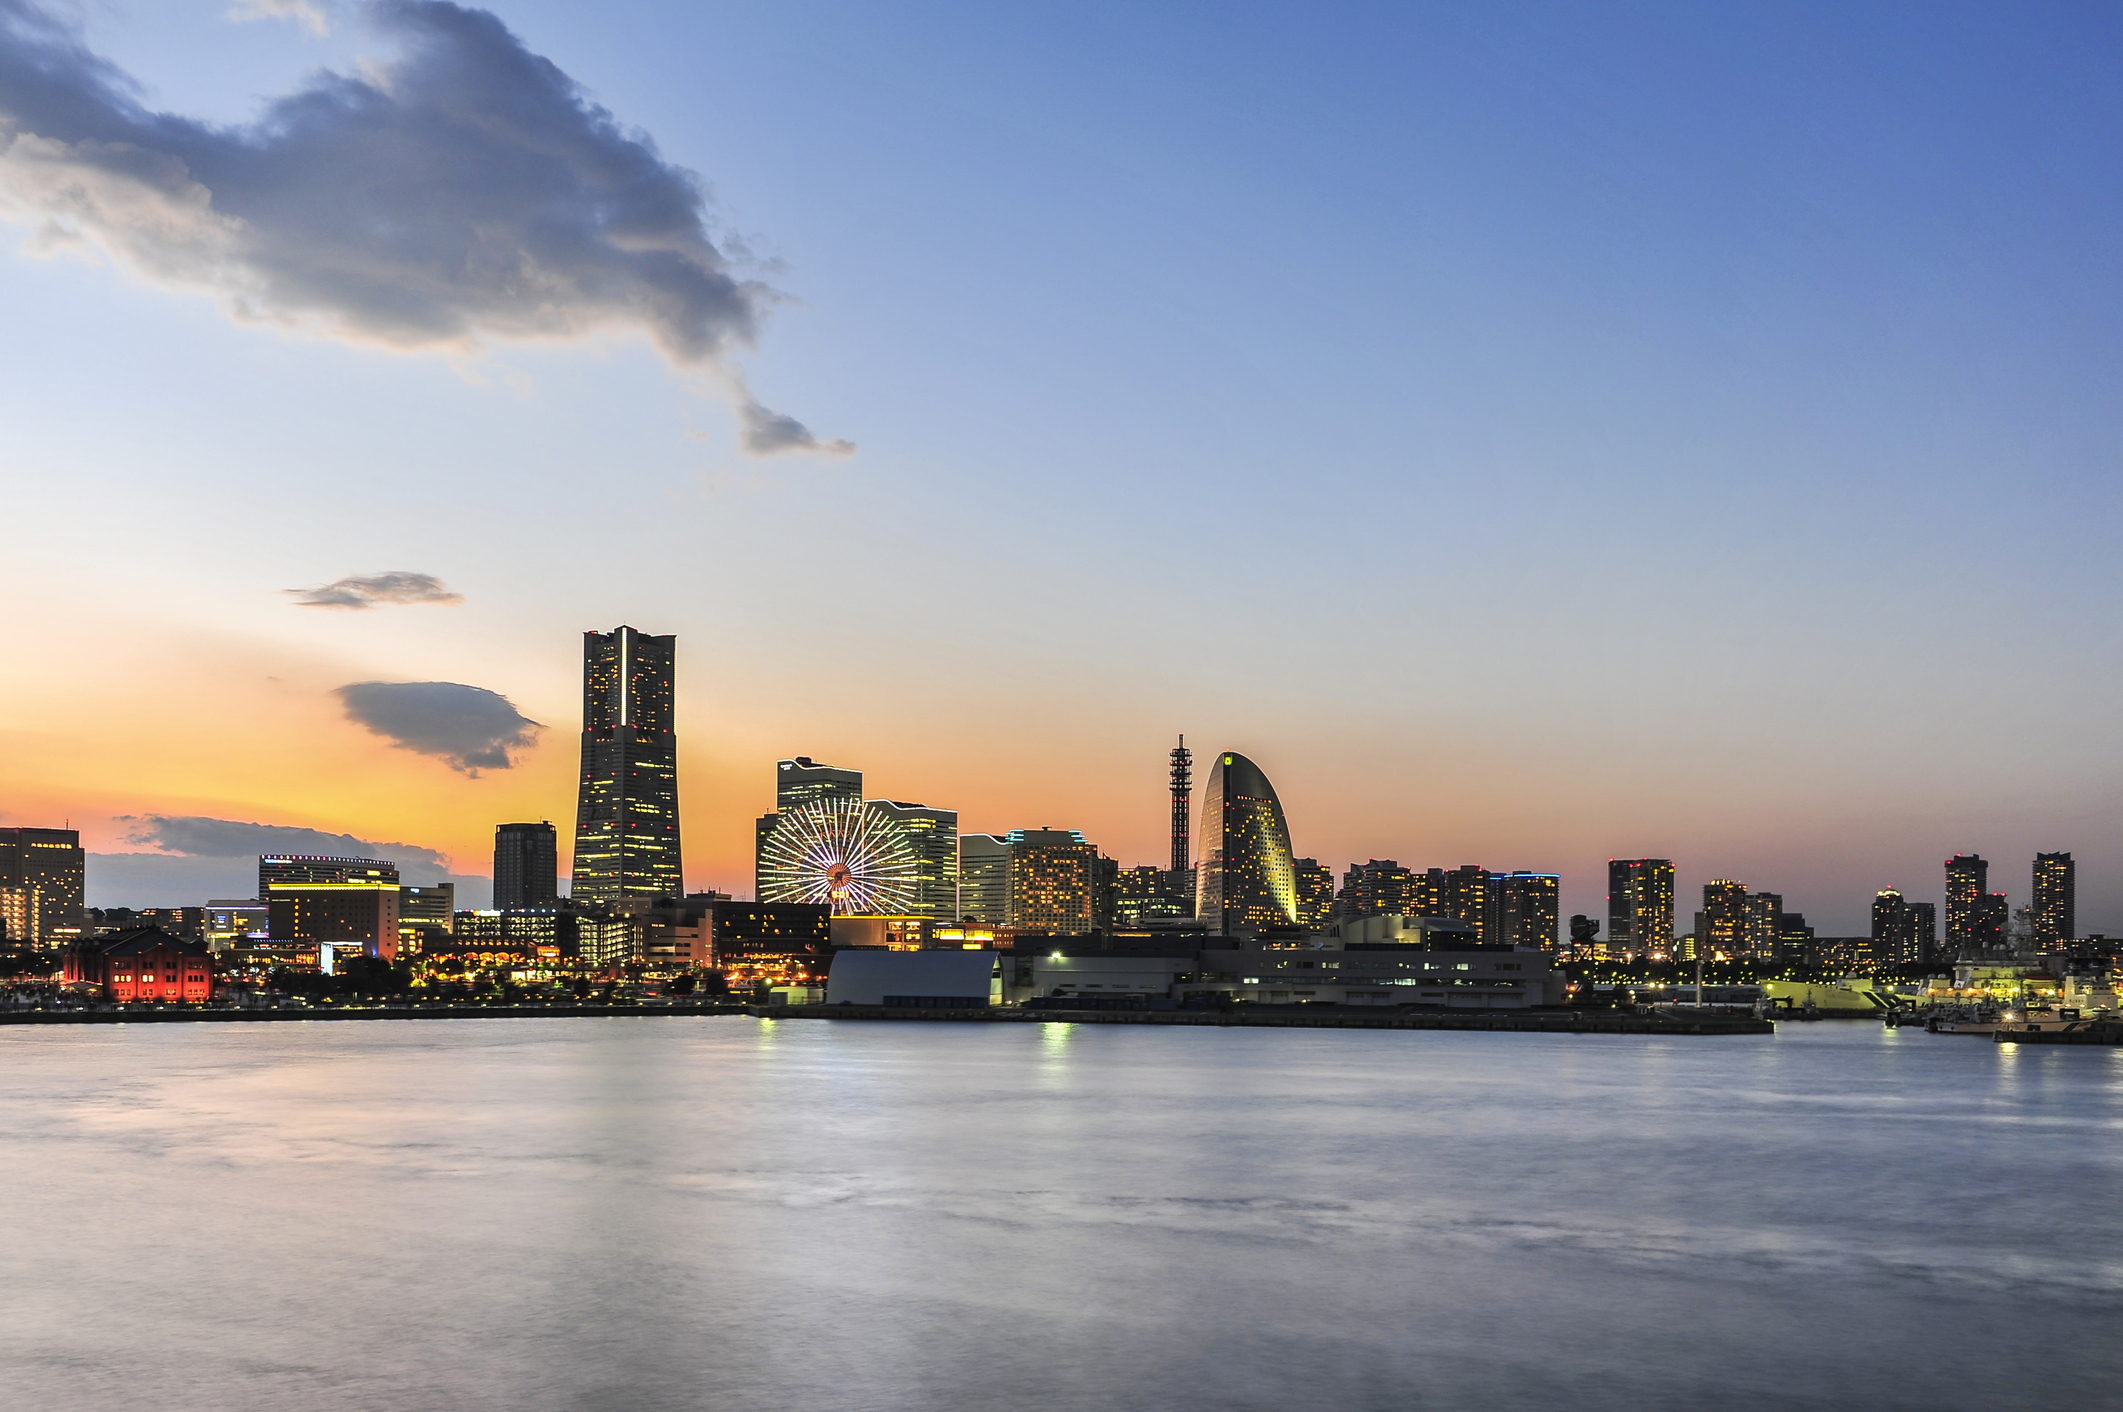 Yokohama-city-at-sunset-519492829_2125x1